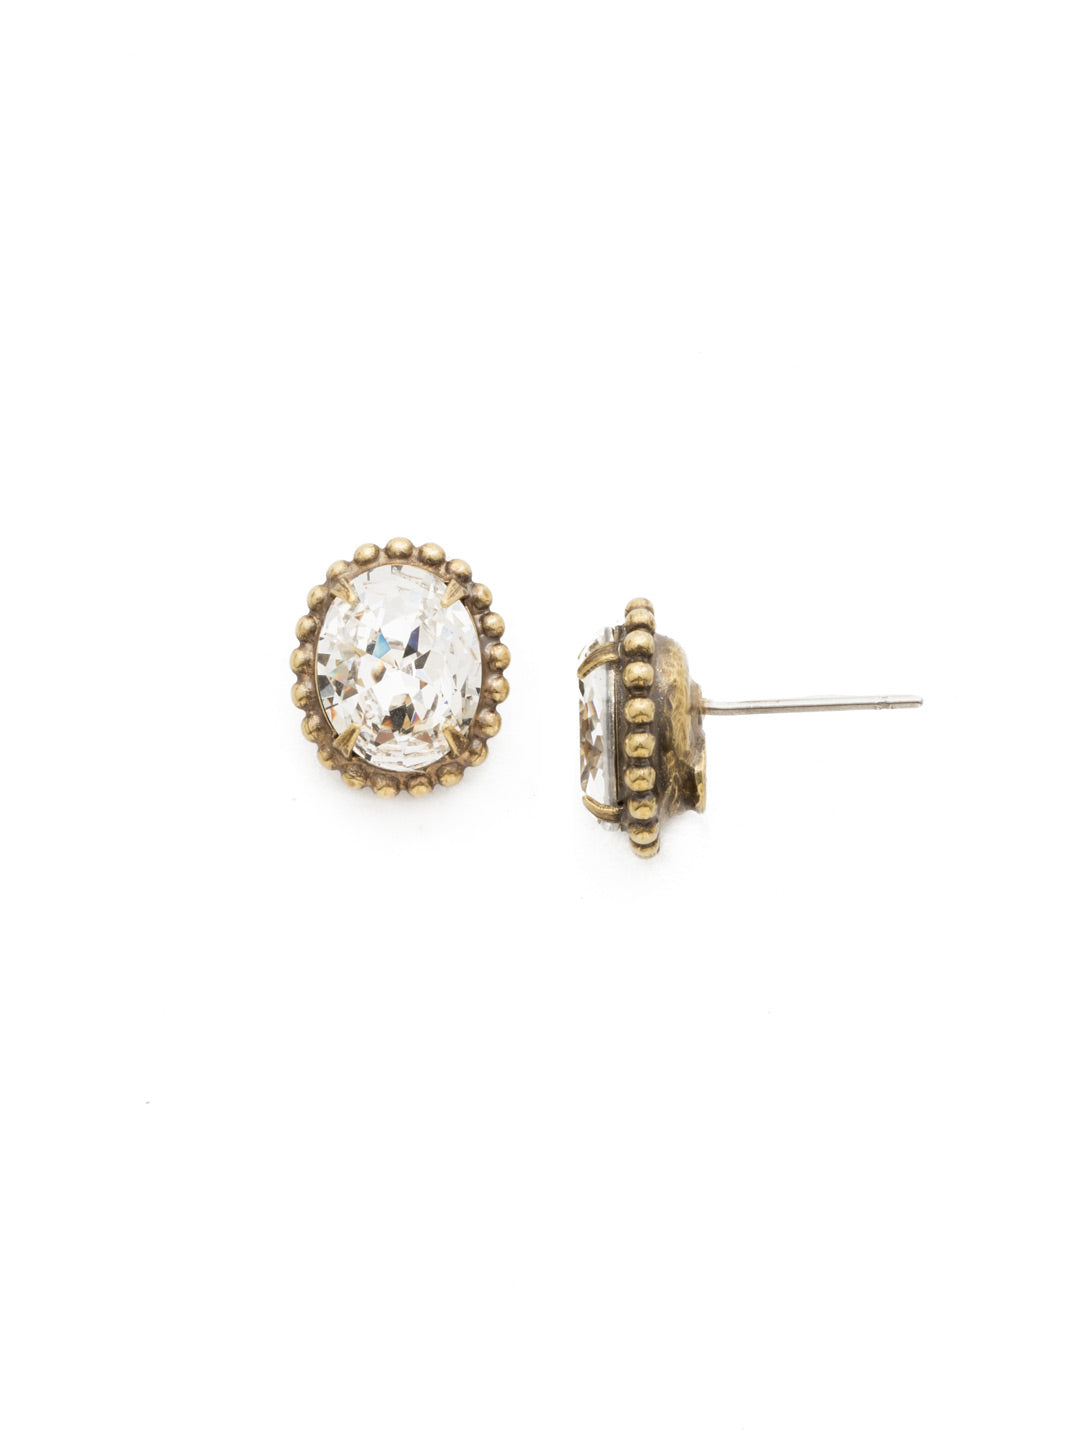 Oval-Cut Solitaire Earring - EDQ10AGCRY